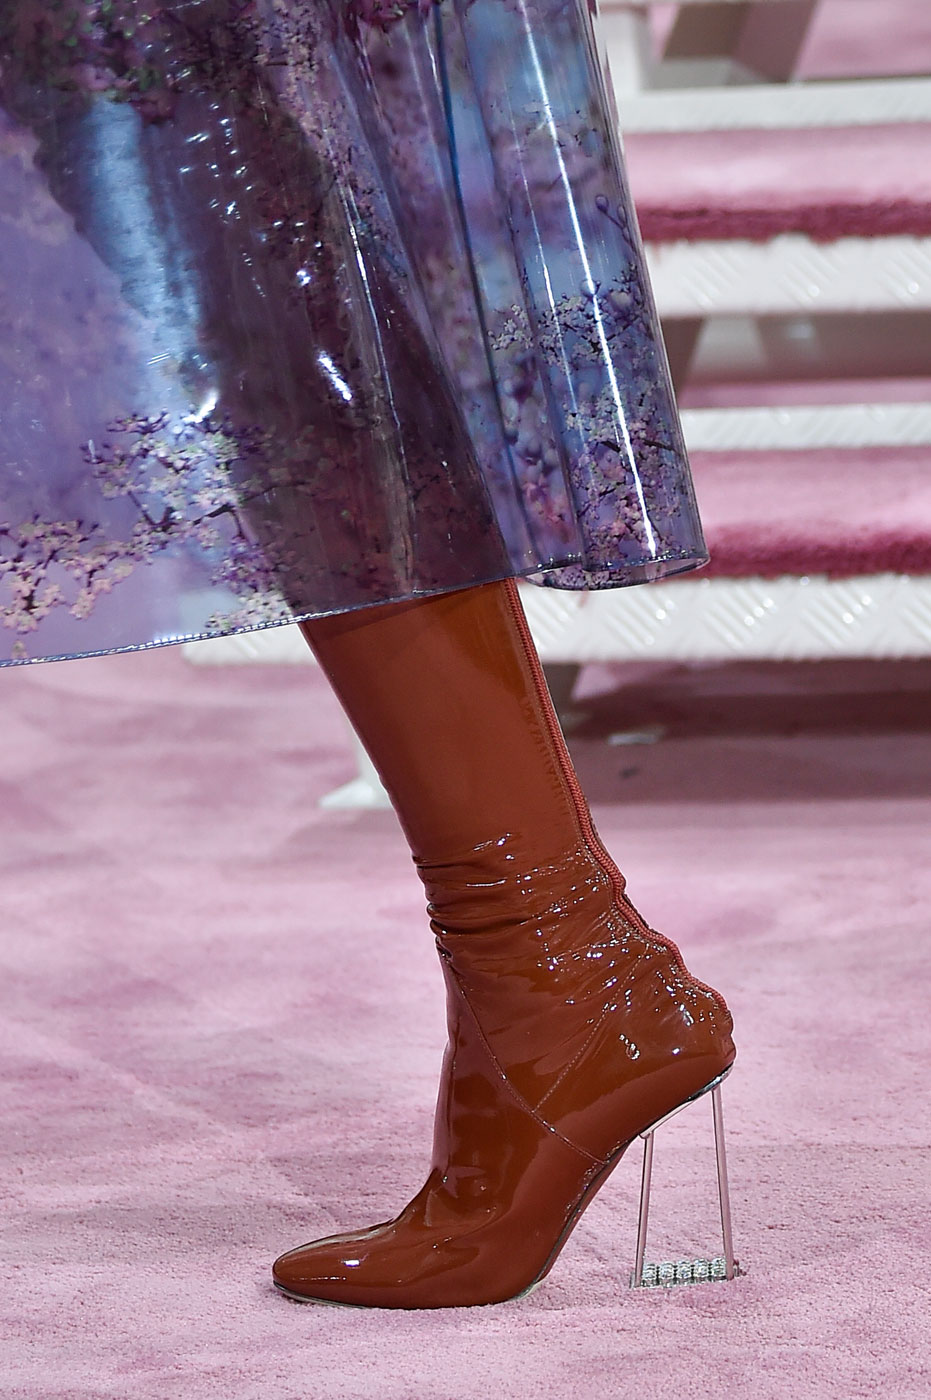 Christian-Dior-fashion-runway-show-close-ups-haute-couture-paris-spring-summer-2015-the-impression-070